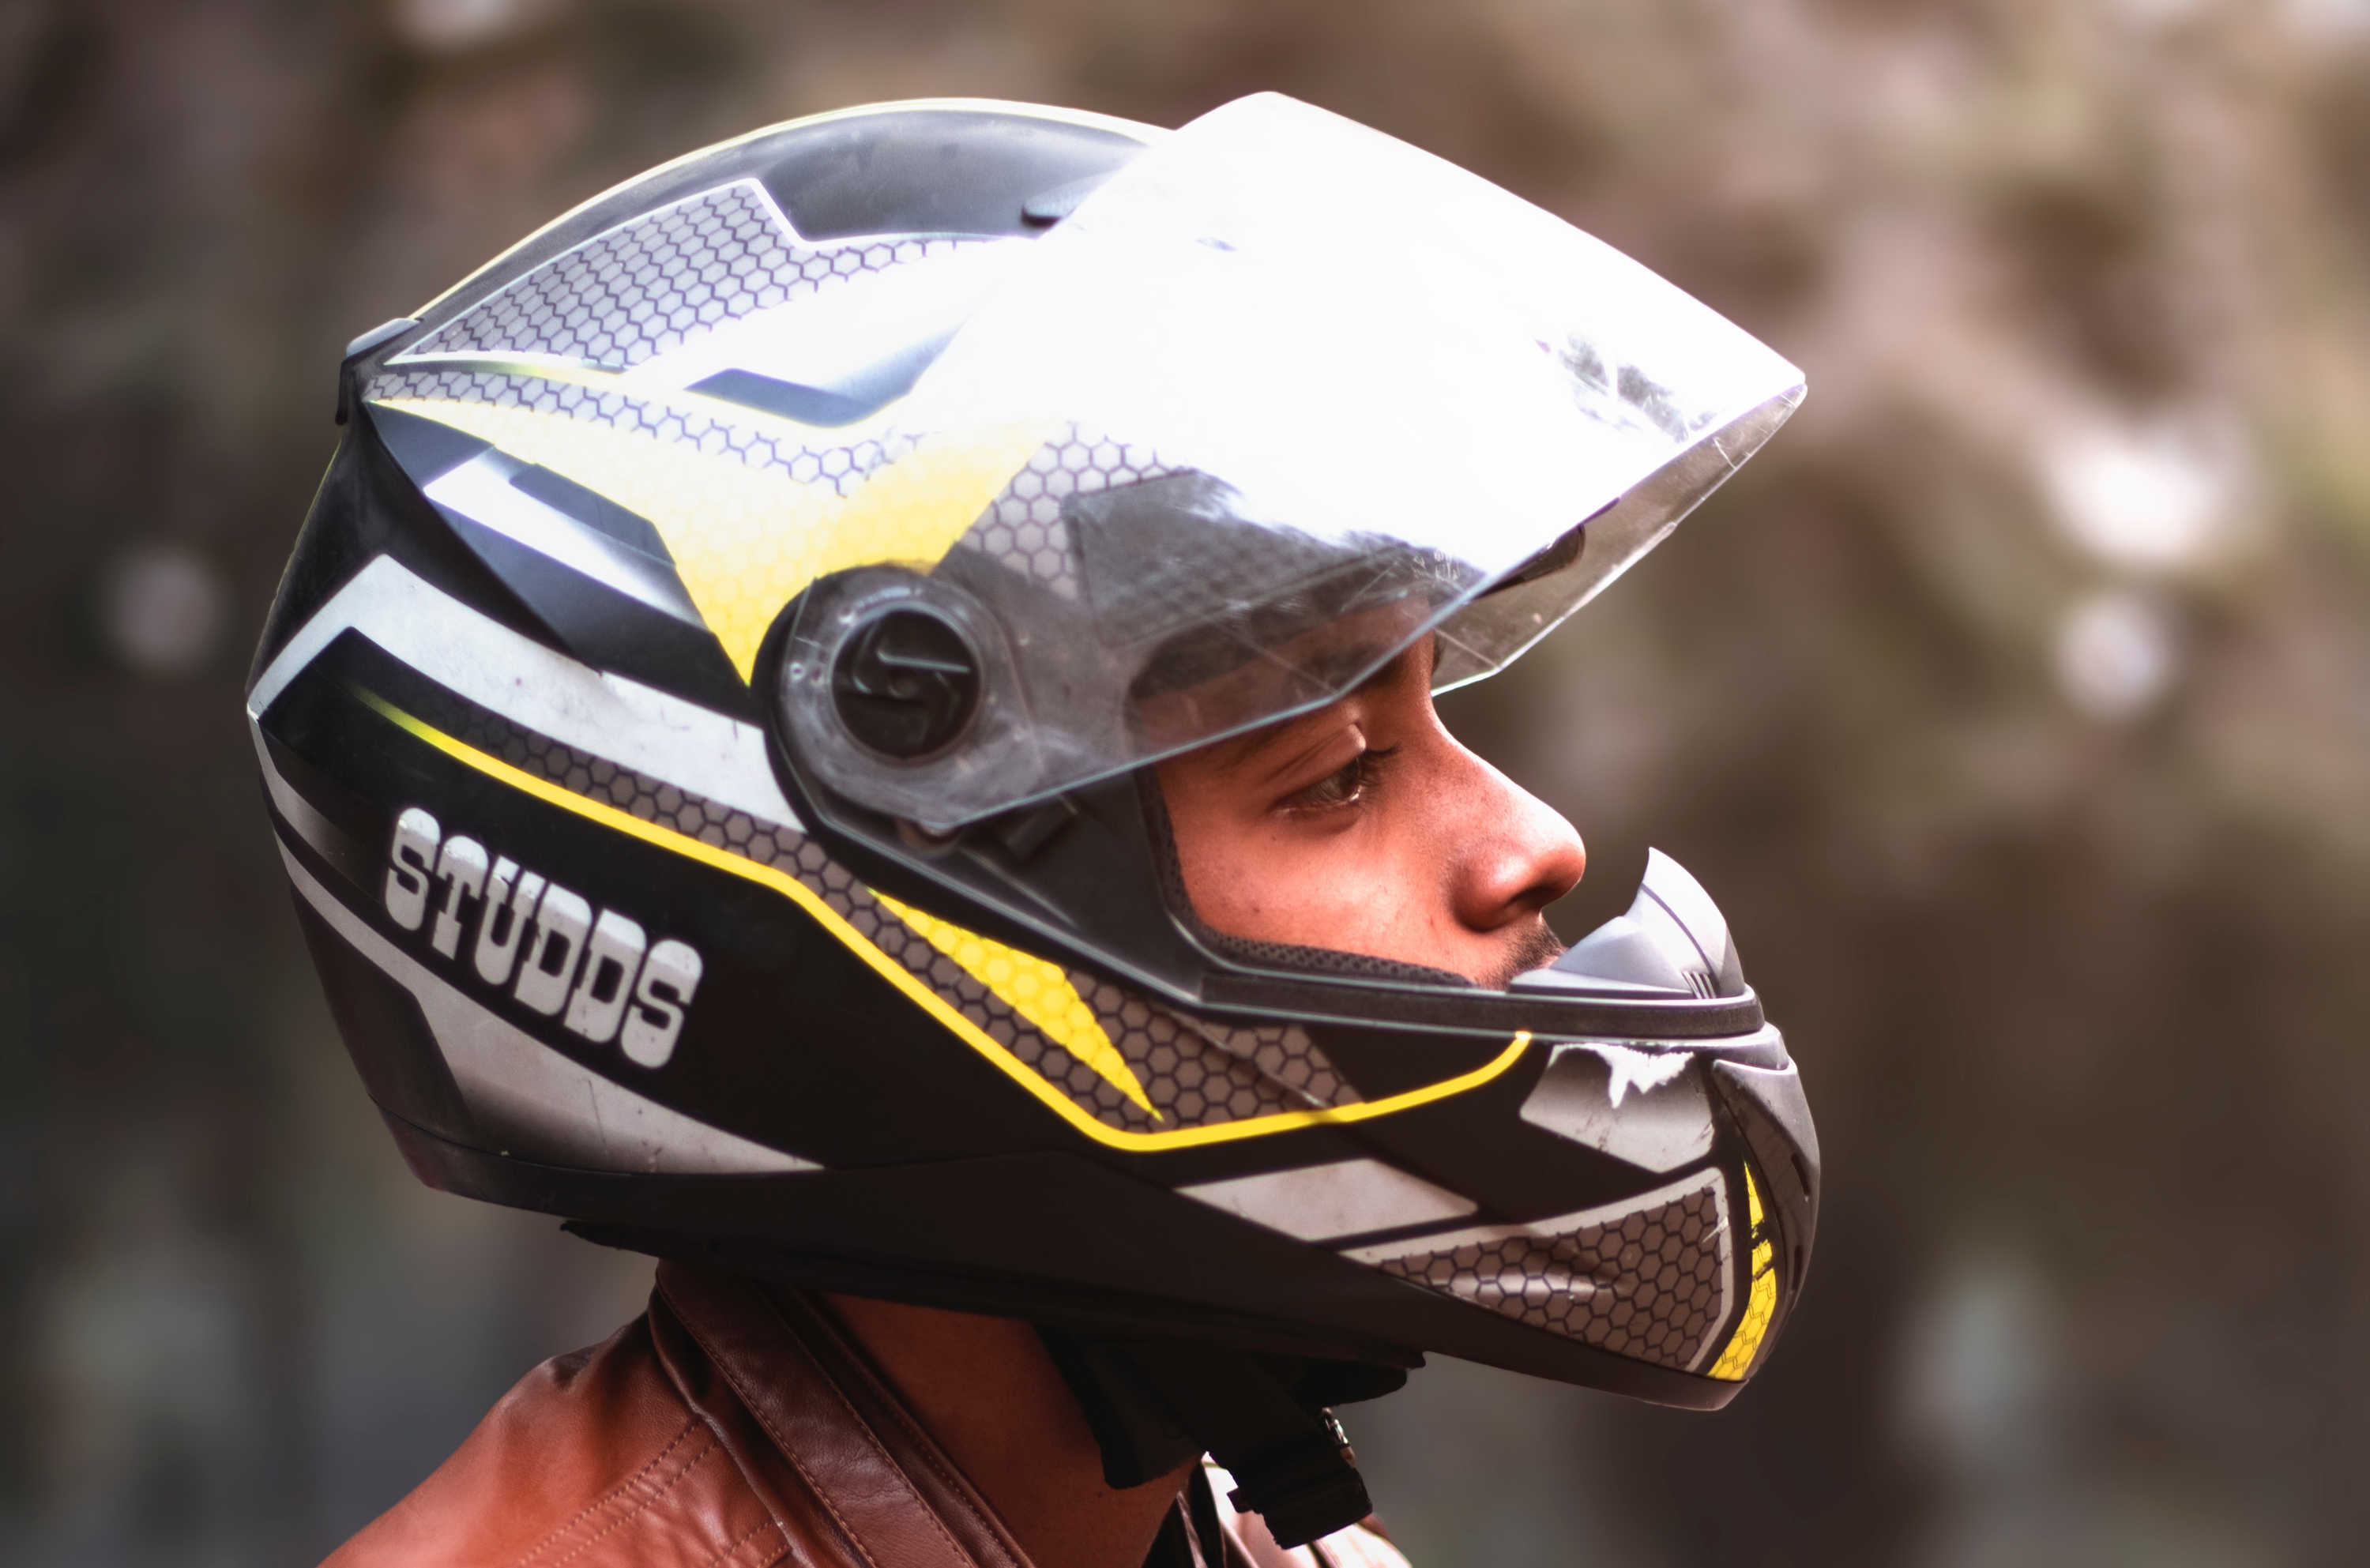 A man wears a full-face motorcycle-style helmet, which are safer at high speeds but reduce peripheral vision.